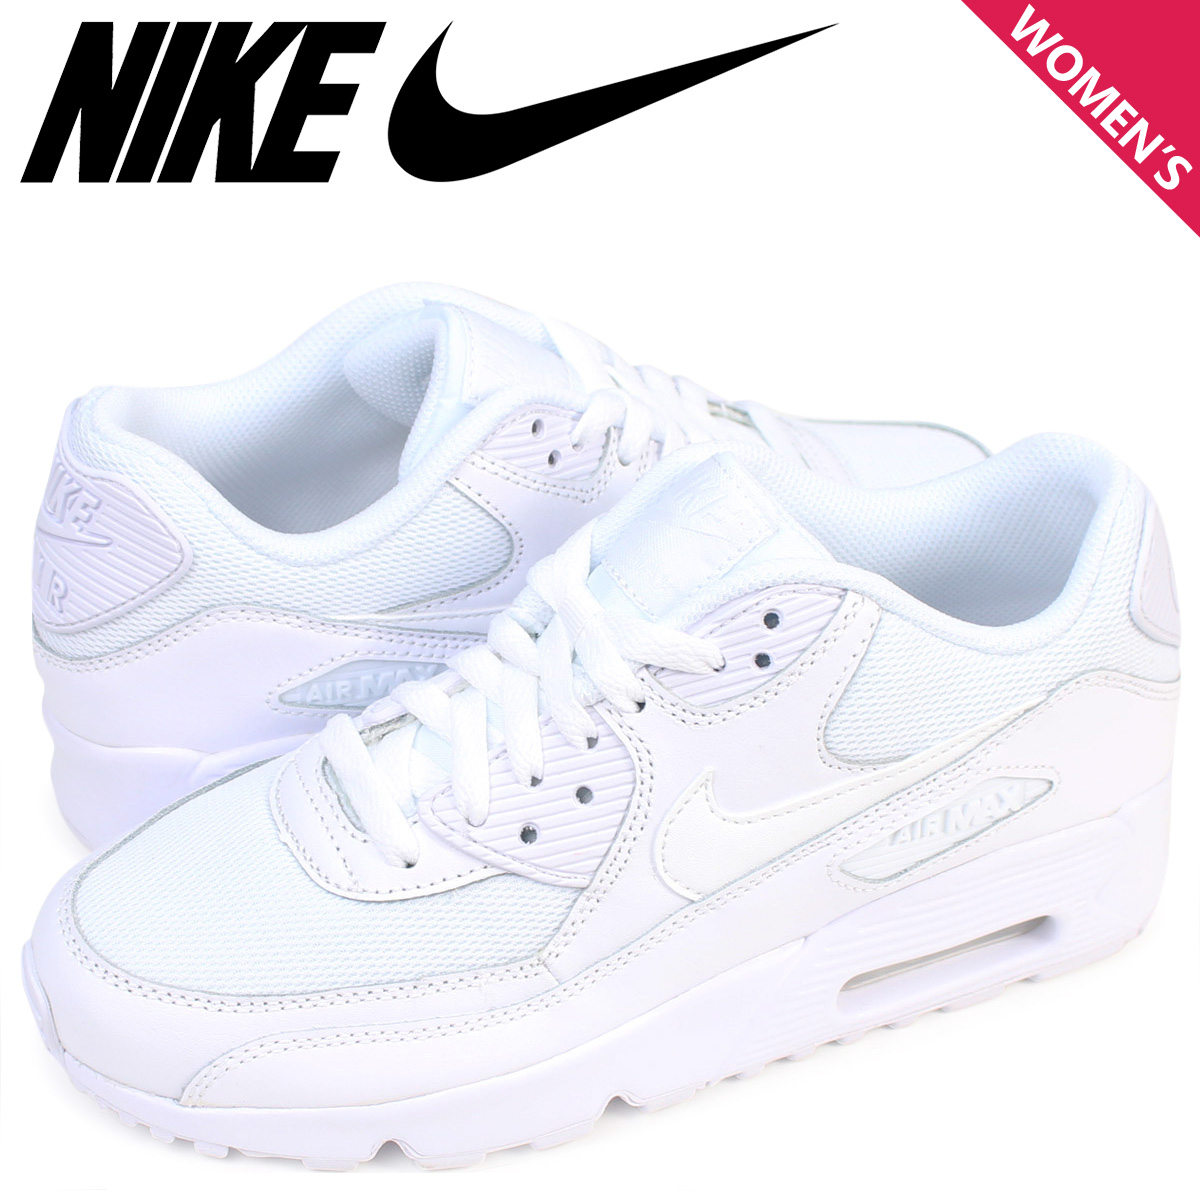 NIKE Kie Ney AMAX 90 Lady's sneakers AIR MAX 90 MESH GS 833,418 100 shoes white [176]